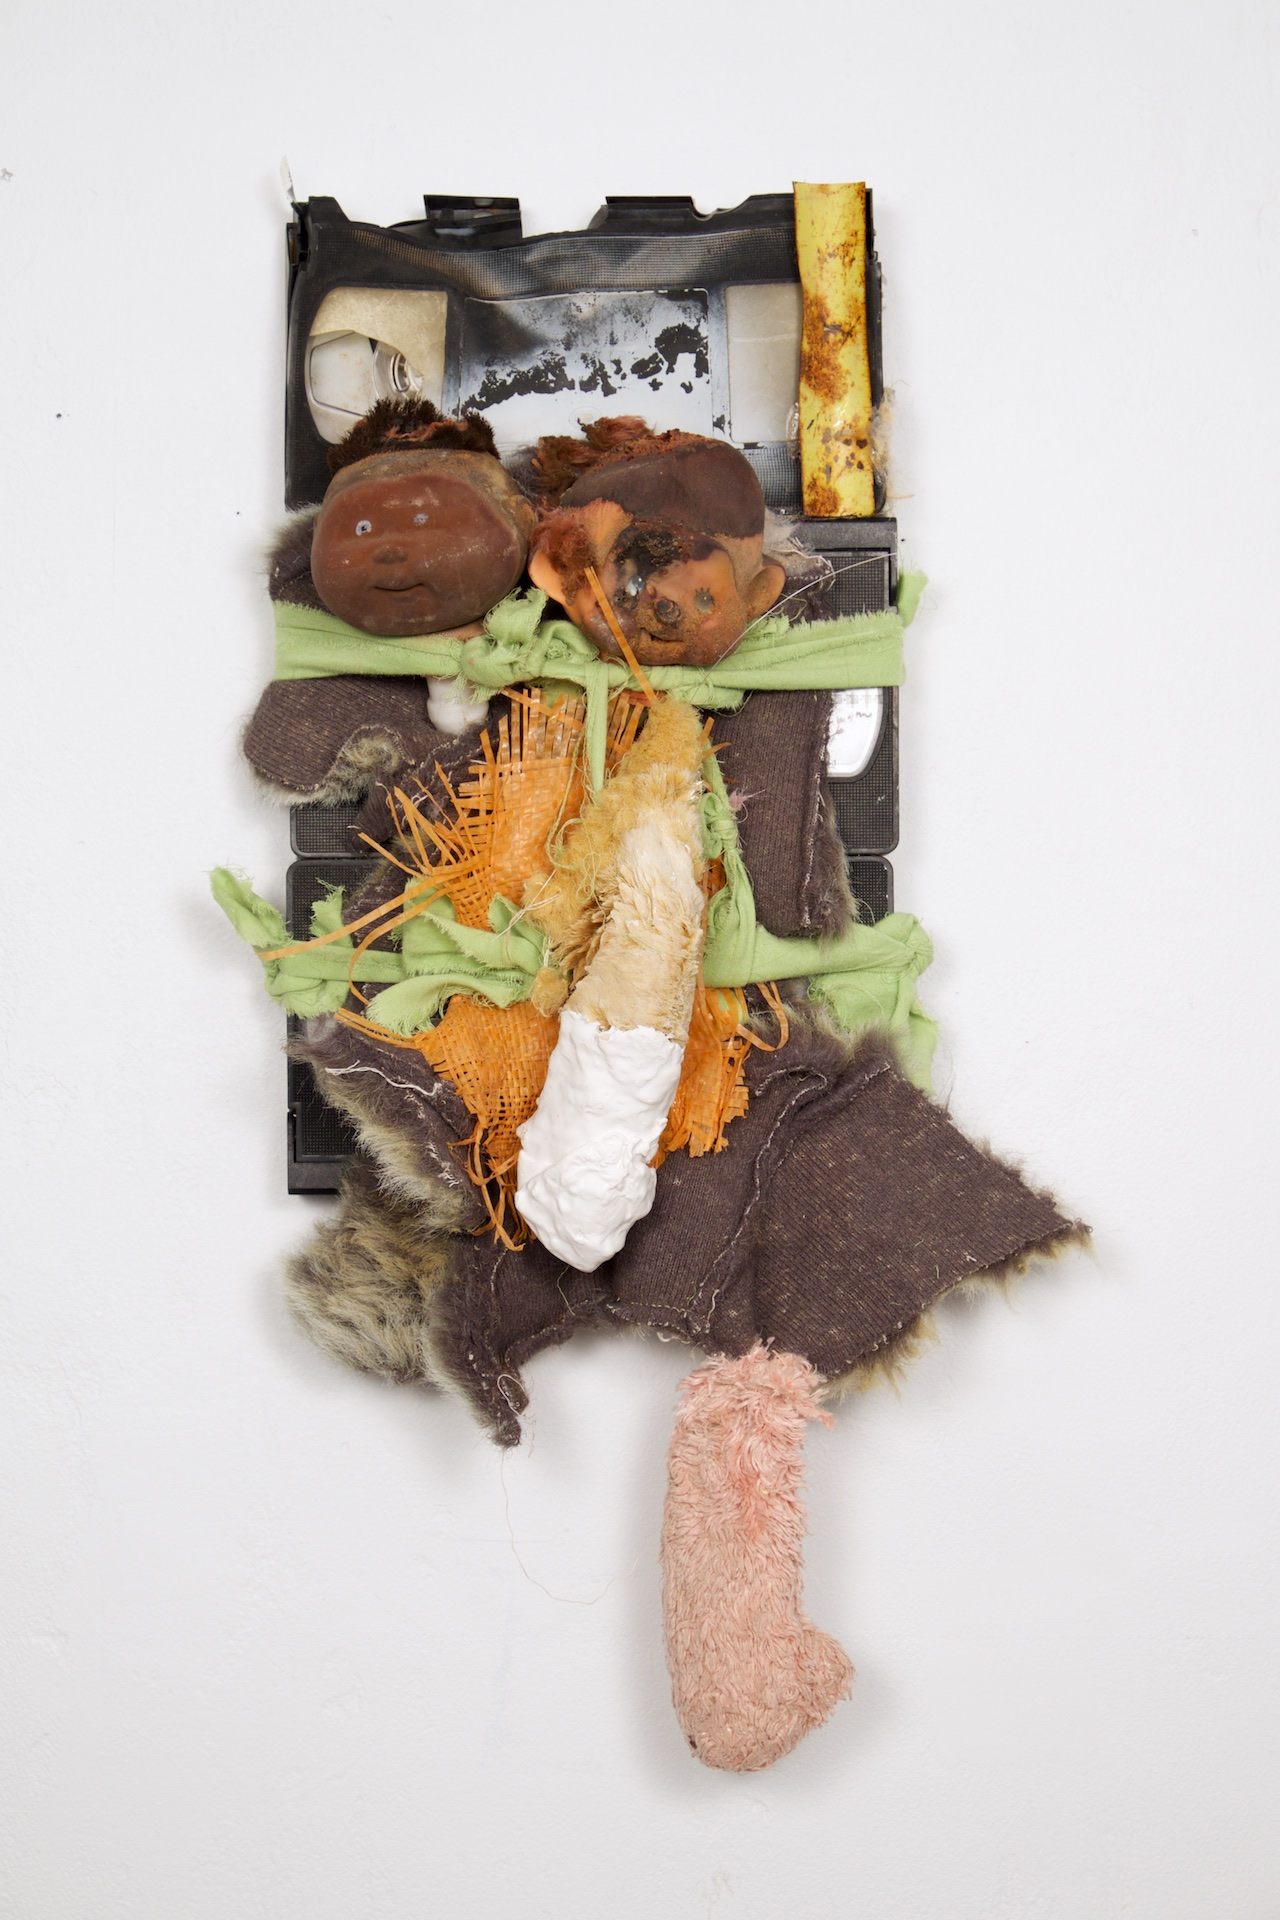 Made at University of Texas at El Paso in bricolage(assemblage)/mixed media, trash found at illegal dump sites, 12x8 inches, 2016.